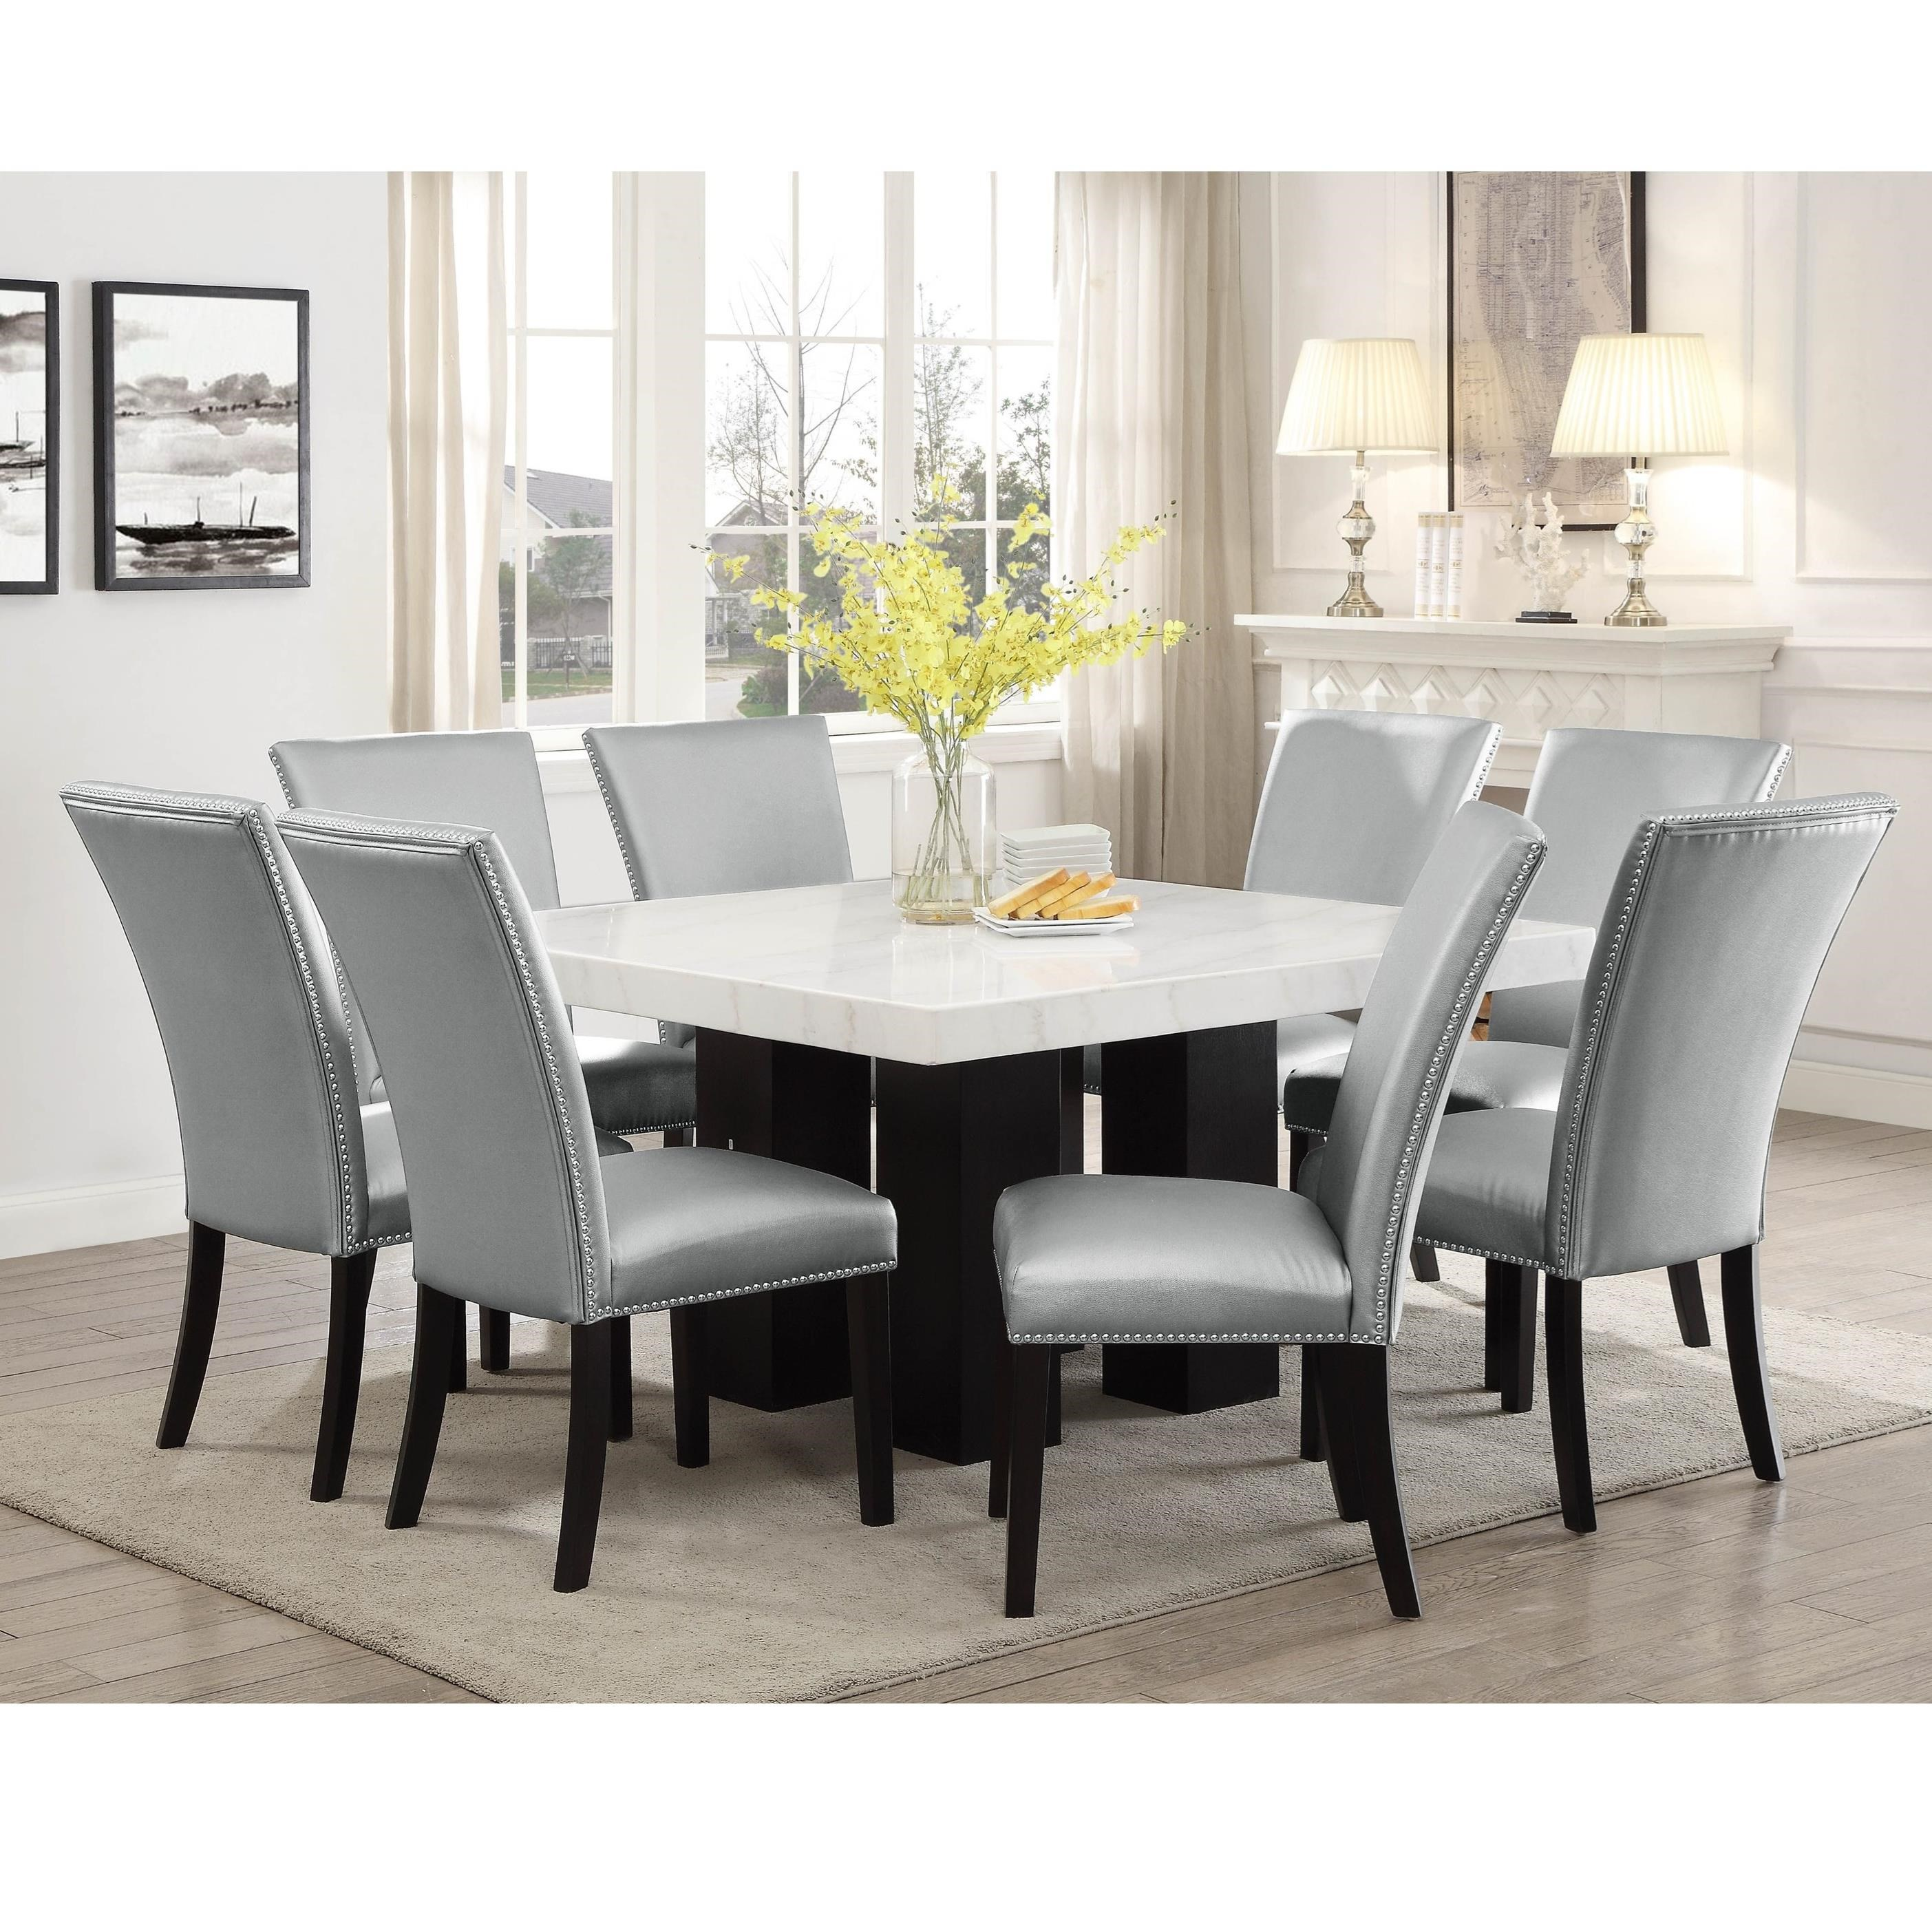 Camila 9 Piece Dining Set by Steve Silver at Northeast Factory Direct